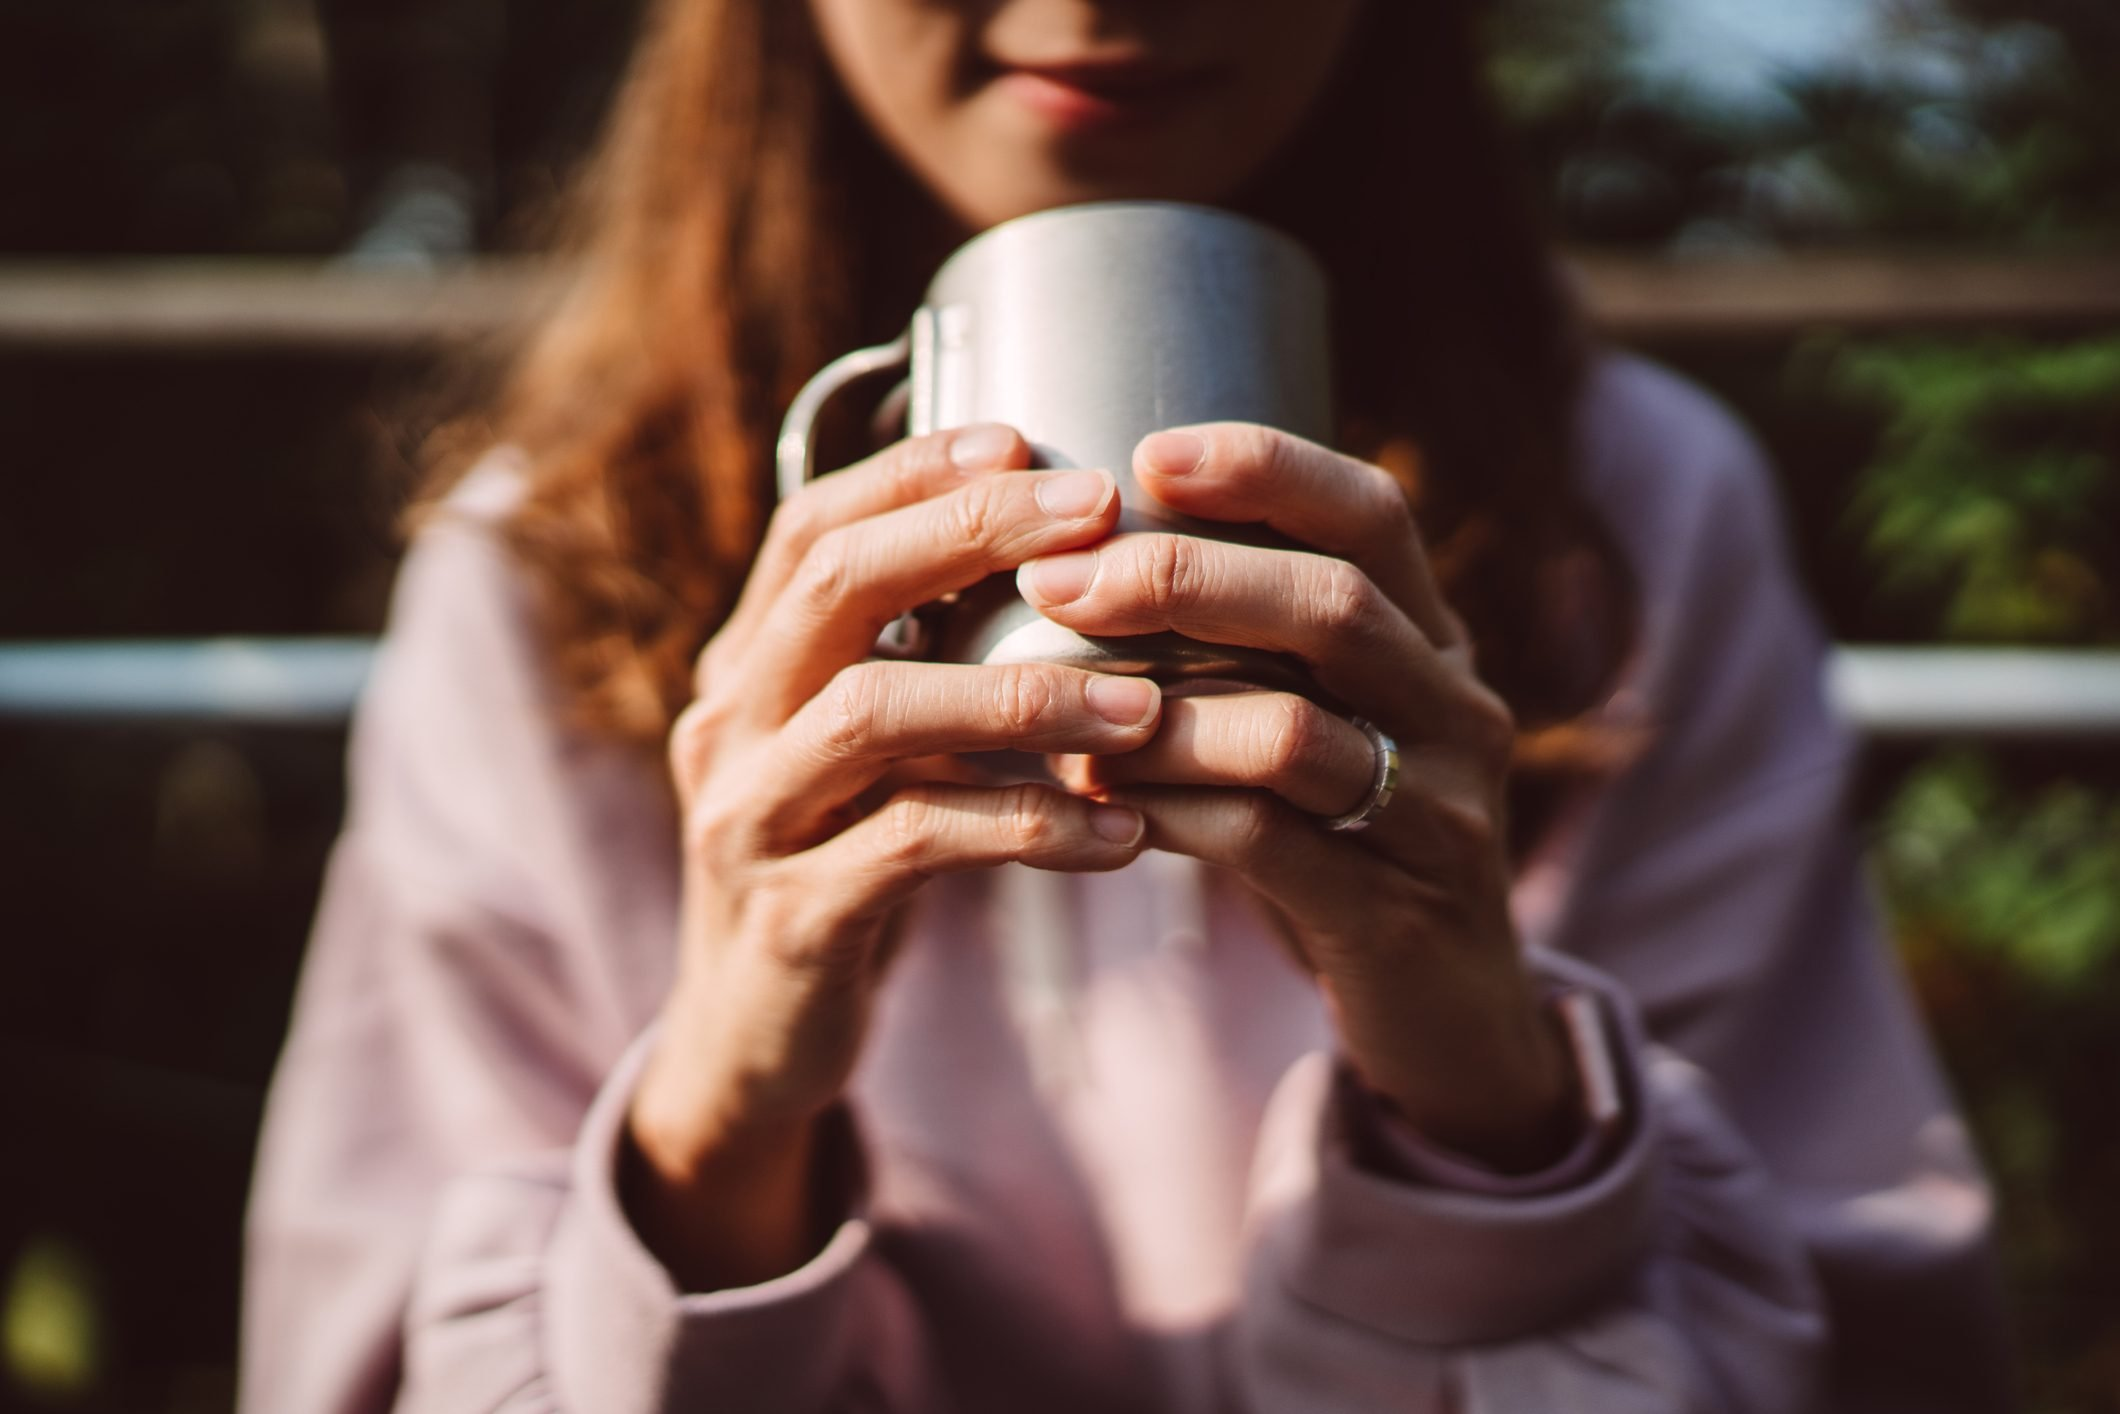 Close-up of lady's hands holding a reusable coffee cup in country side